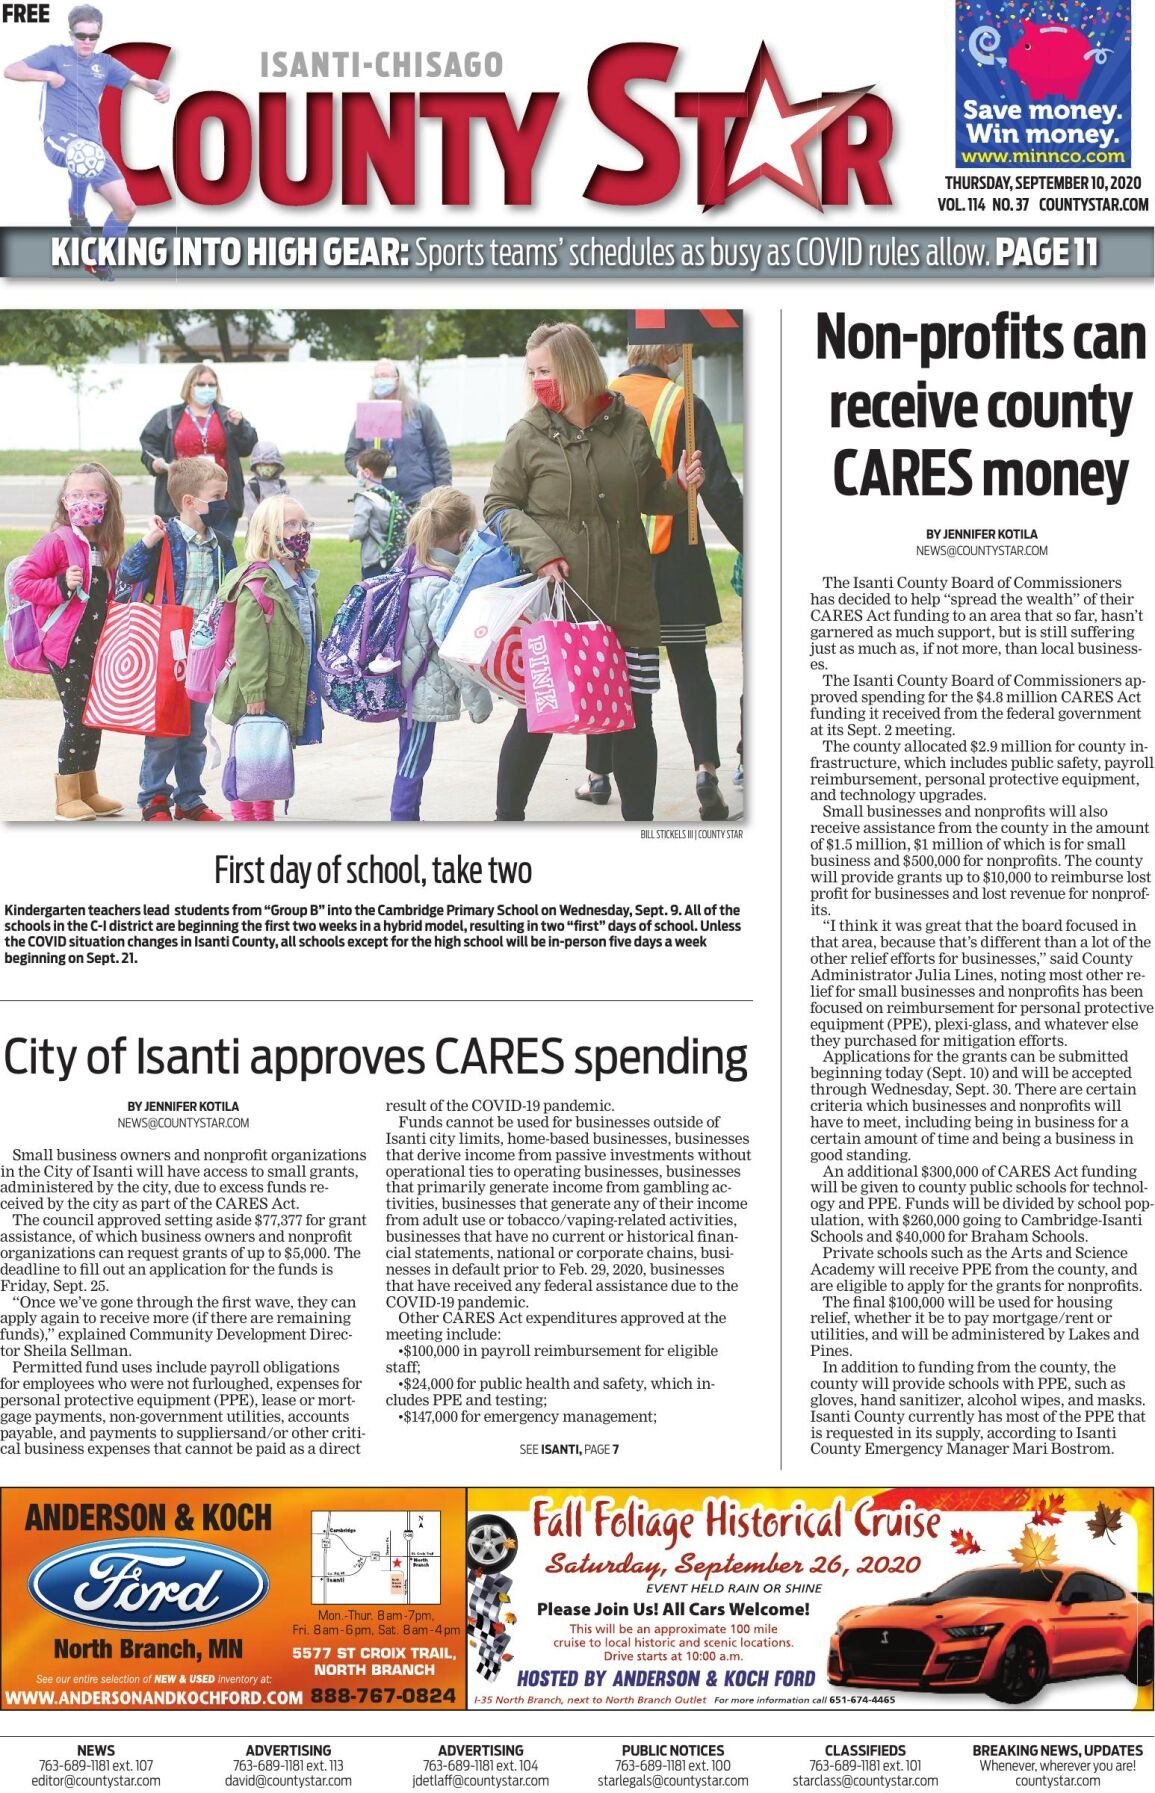 Isanti-Chisago County Star September 10, 2020 e-edition